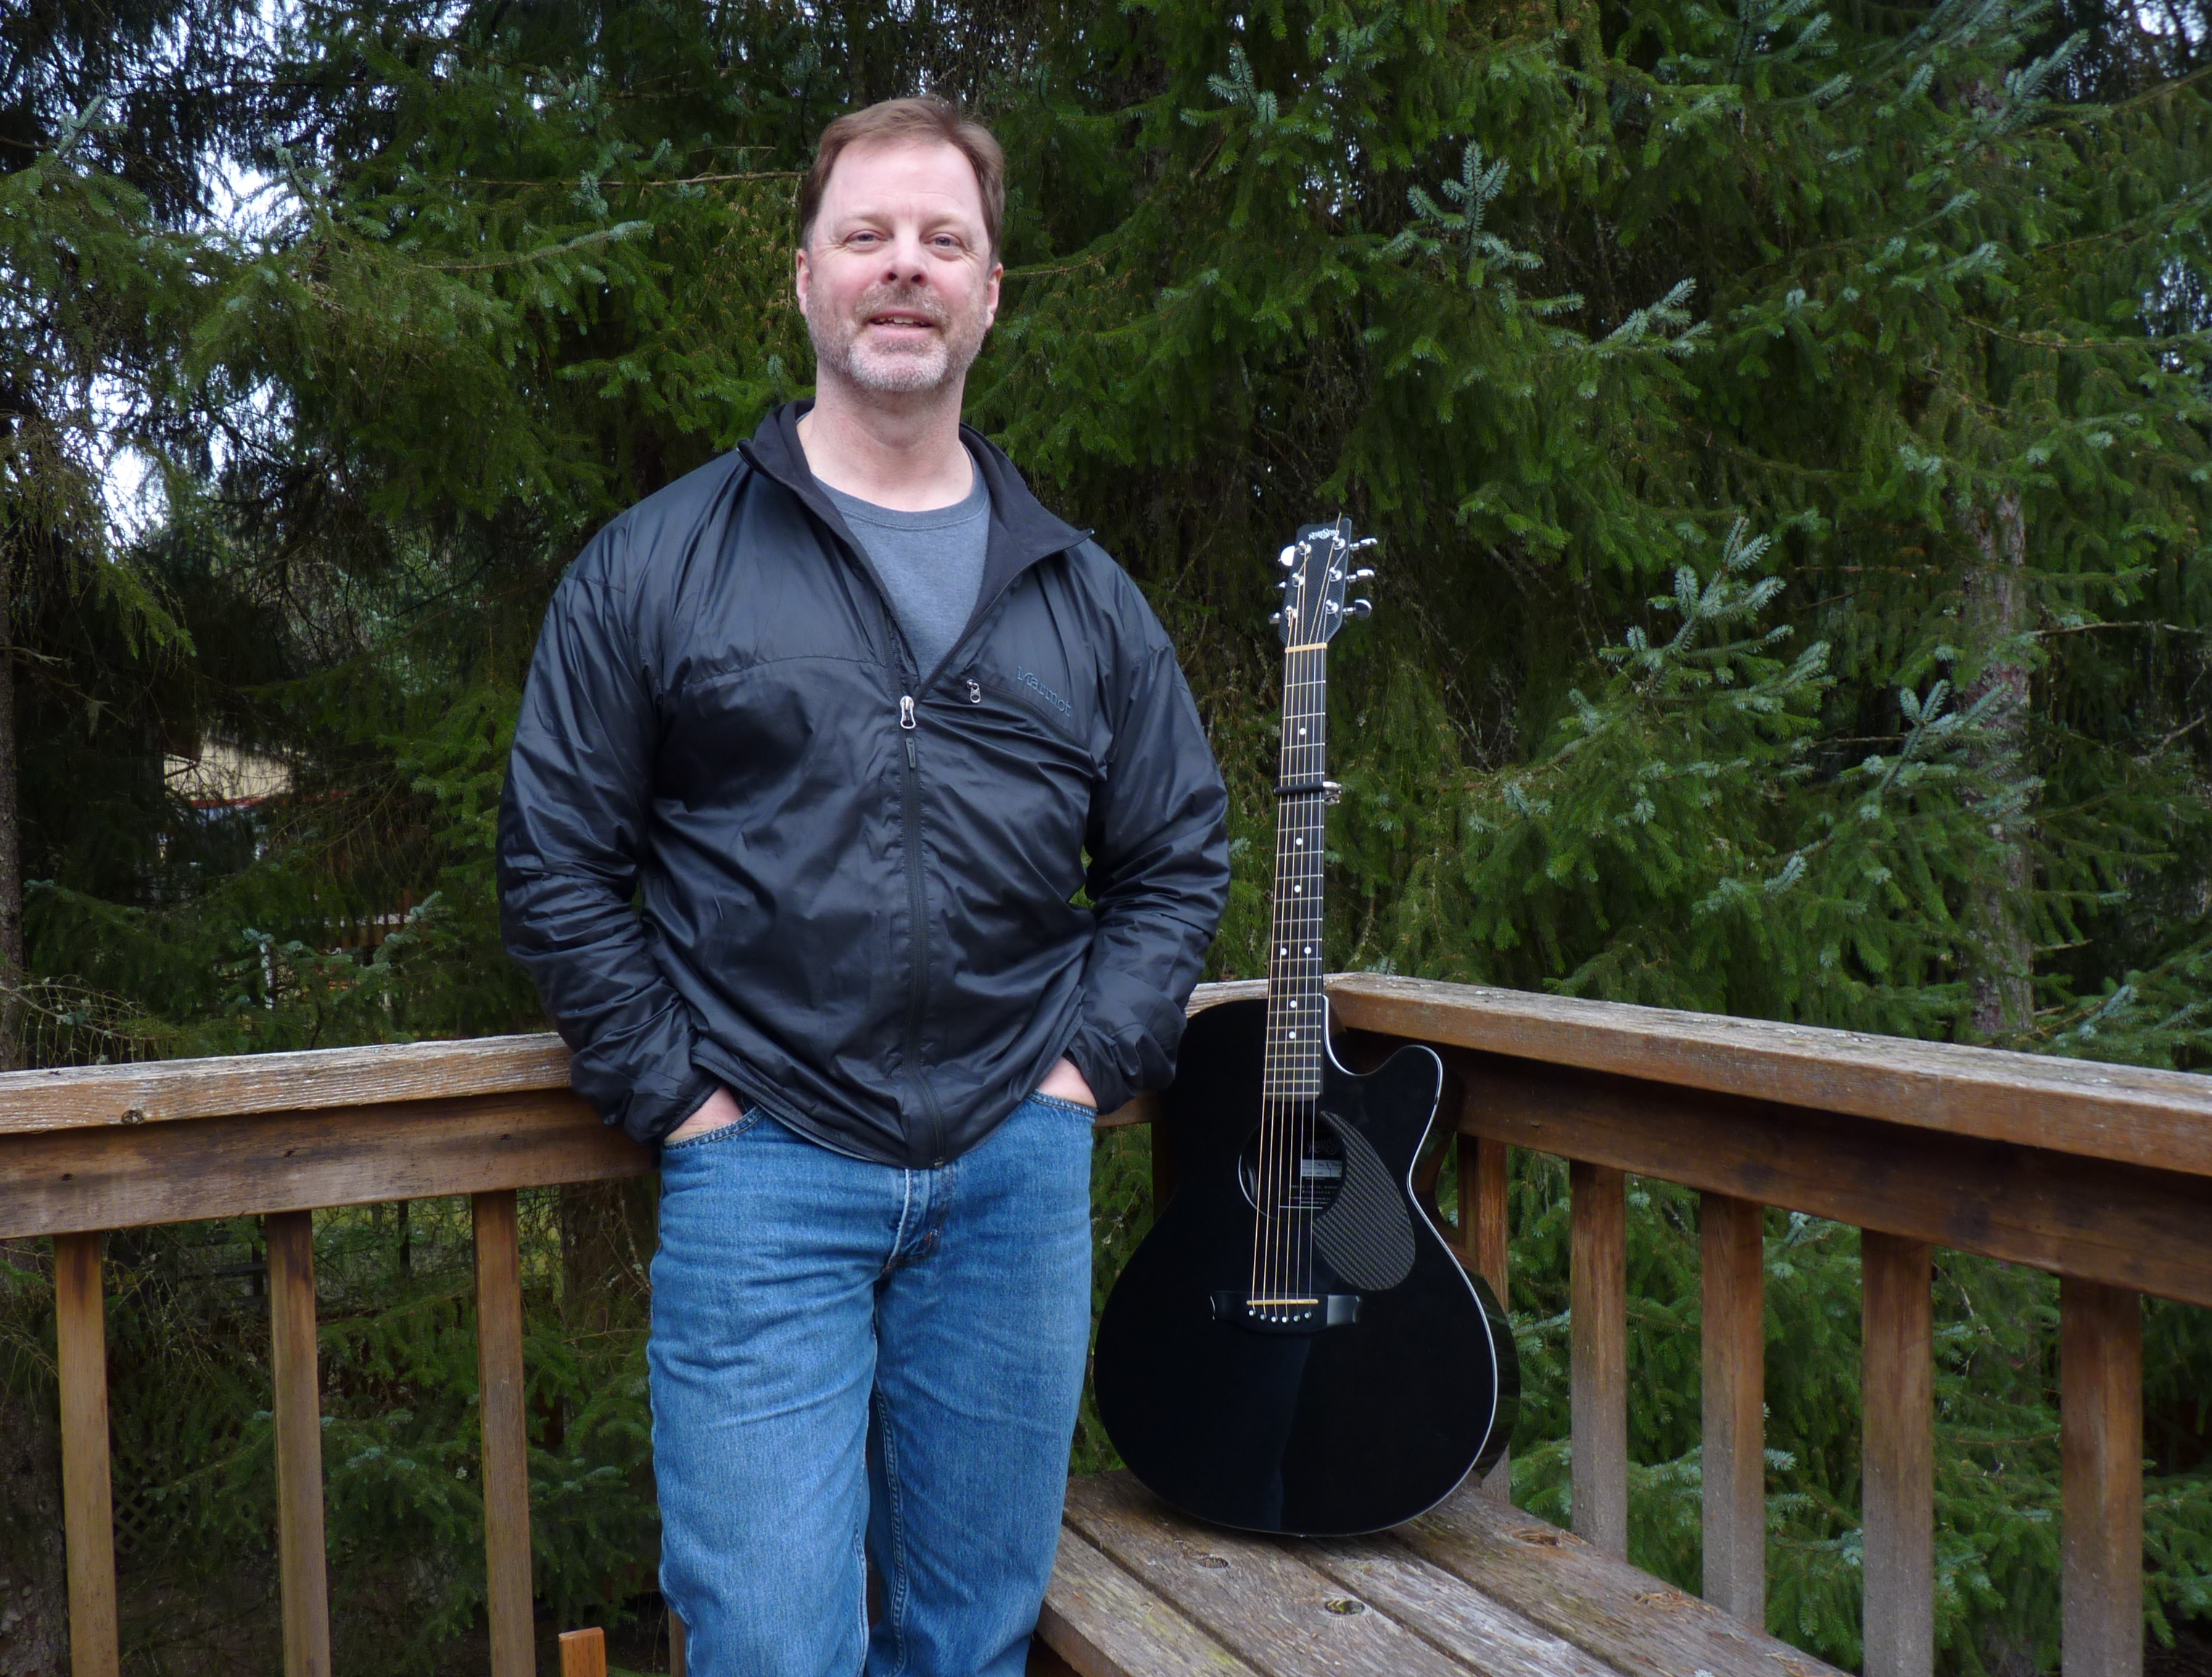 Juneau guitarist, singer and songwriter Kray Van Kirk poses on his back porch. He'll perform during the Alaska Folk Festival, April 4-11 in Juneau. (Photo by Ed Schoenfeld, CoastAlaska - Juneau)